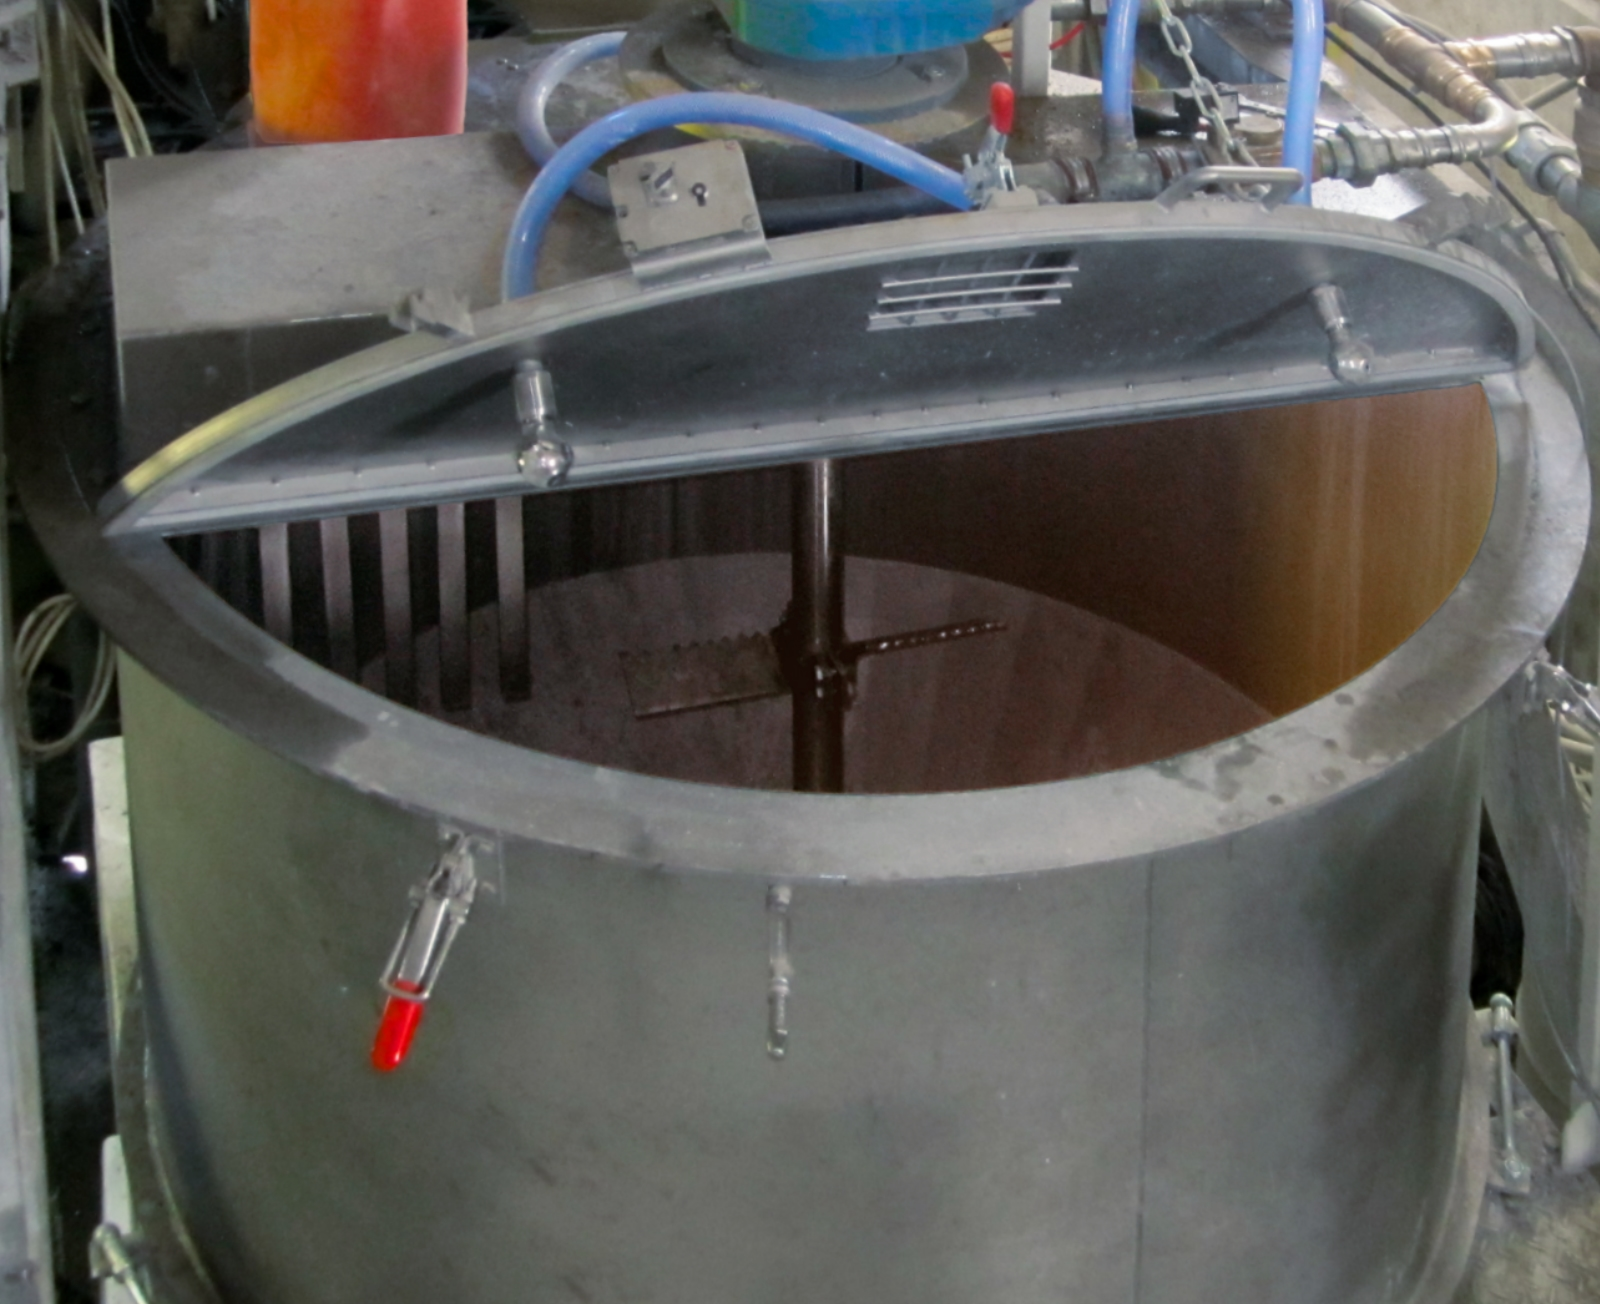 Cylindrical mixer with open mixer lid with a centric agitator and serrated mixing tool.